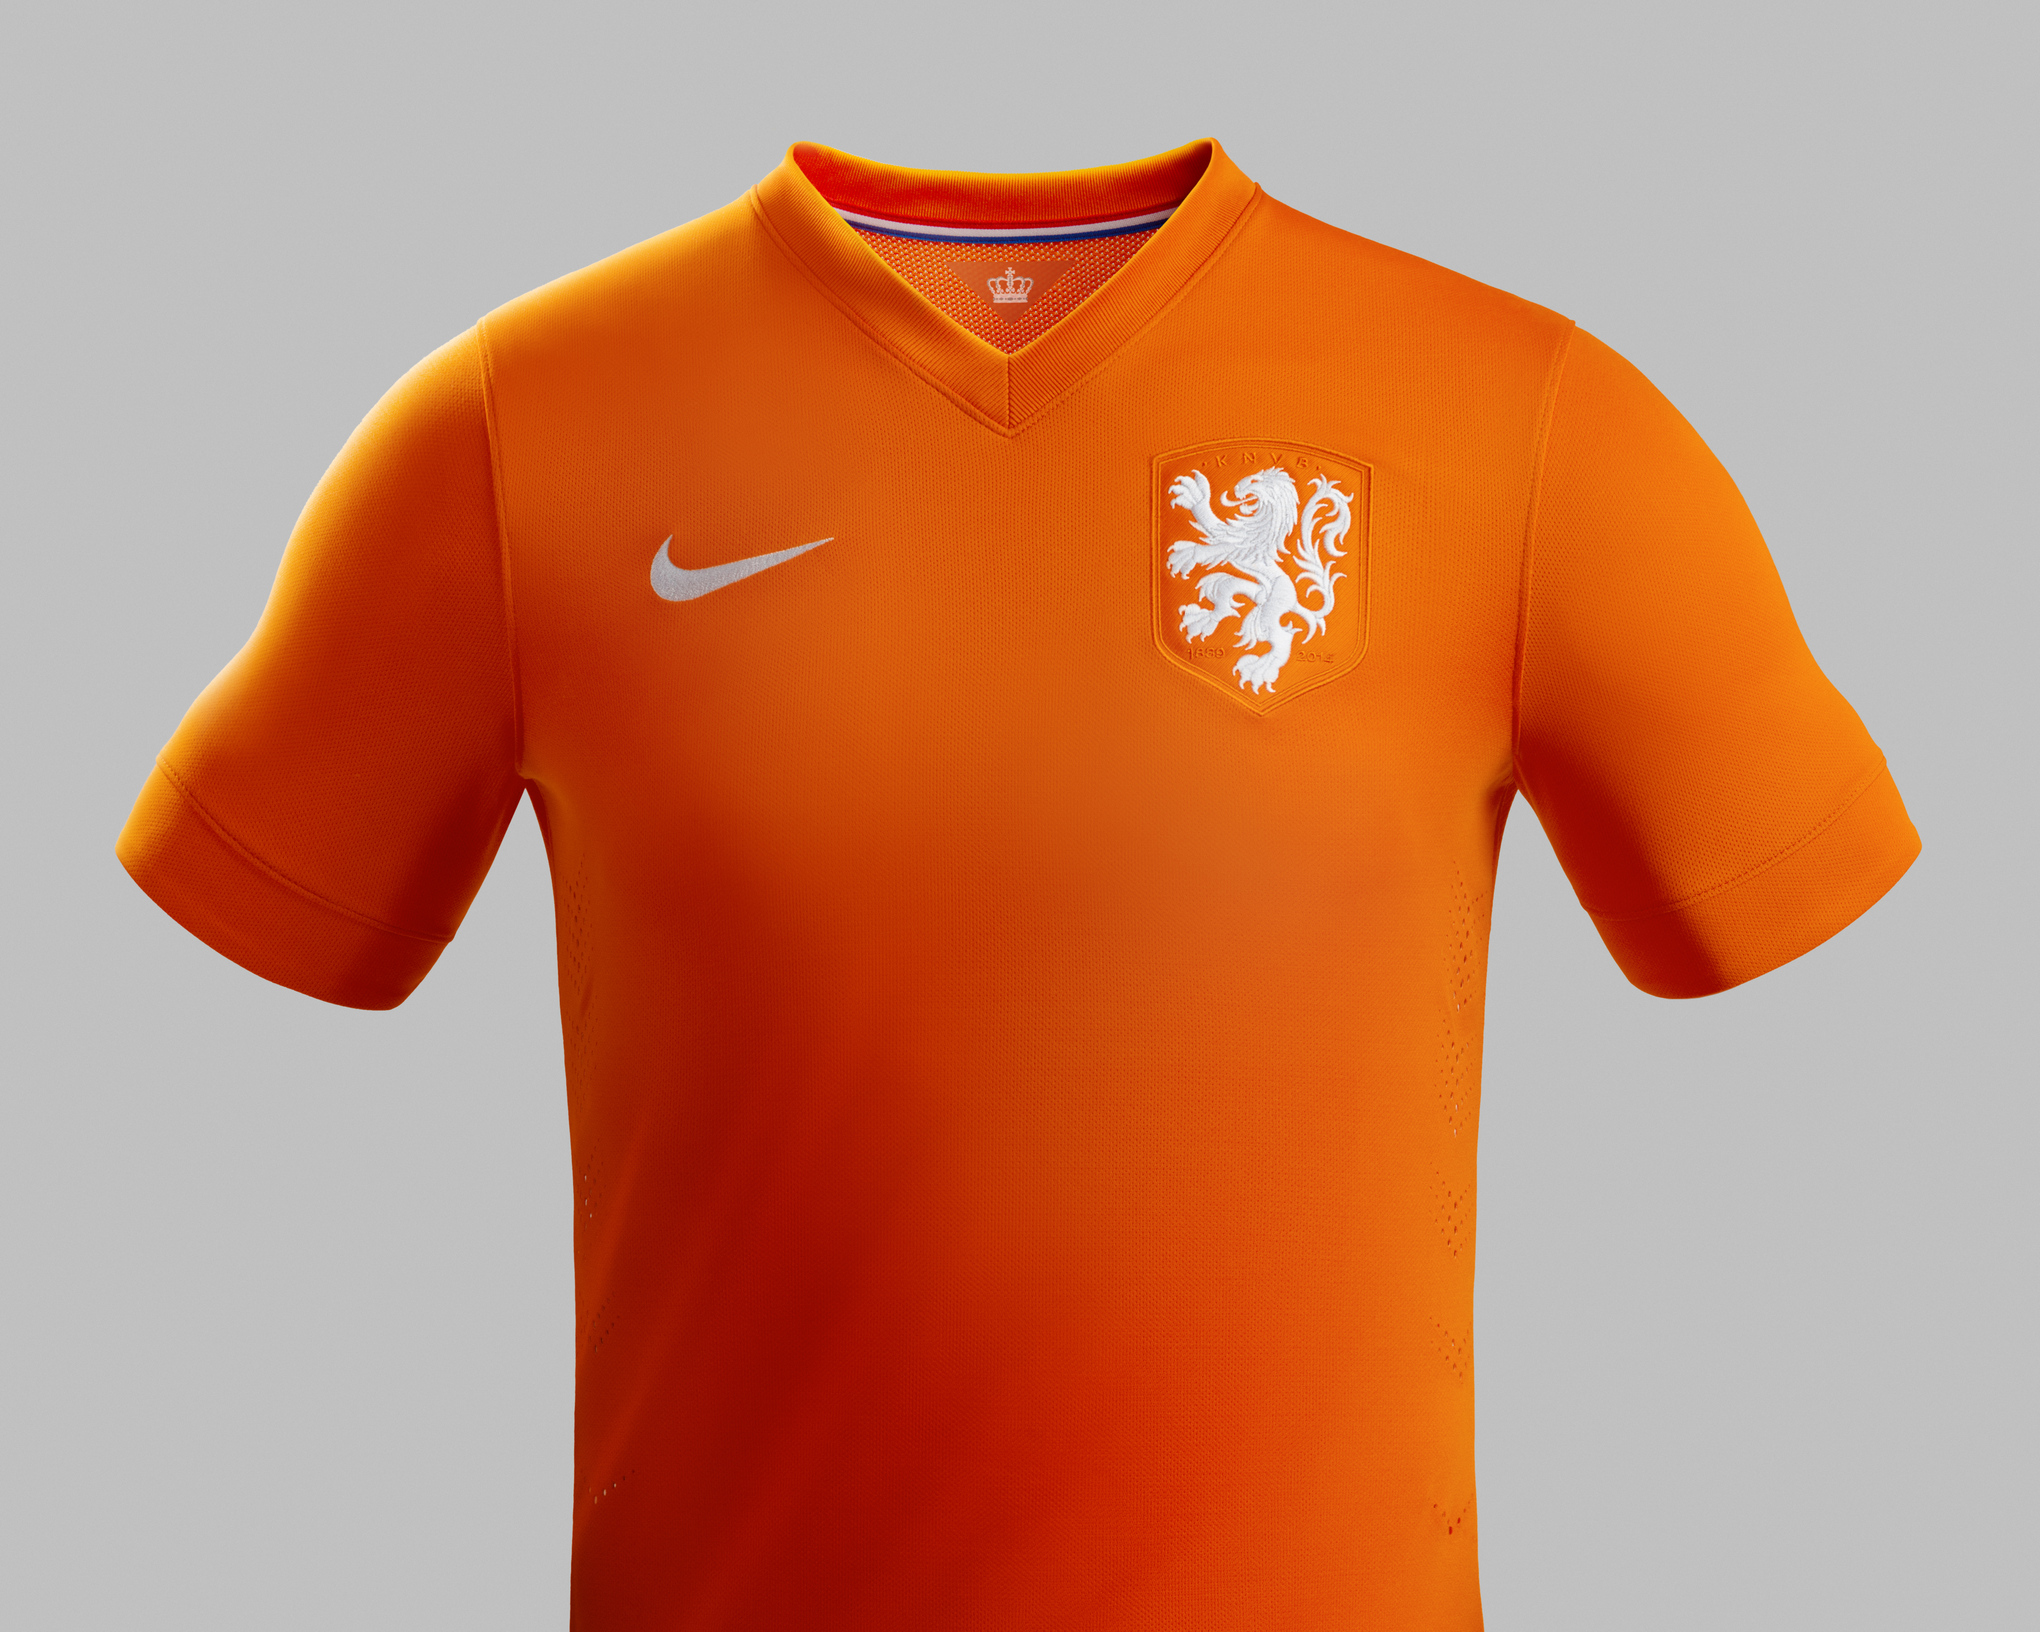 Find great deals on eBay for netherlands soccer jersey. Shop with confidence.